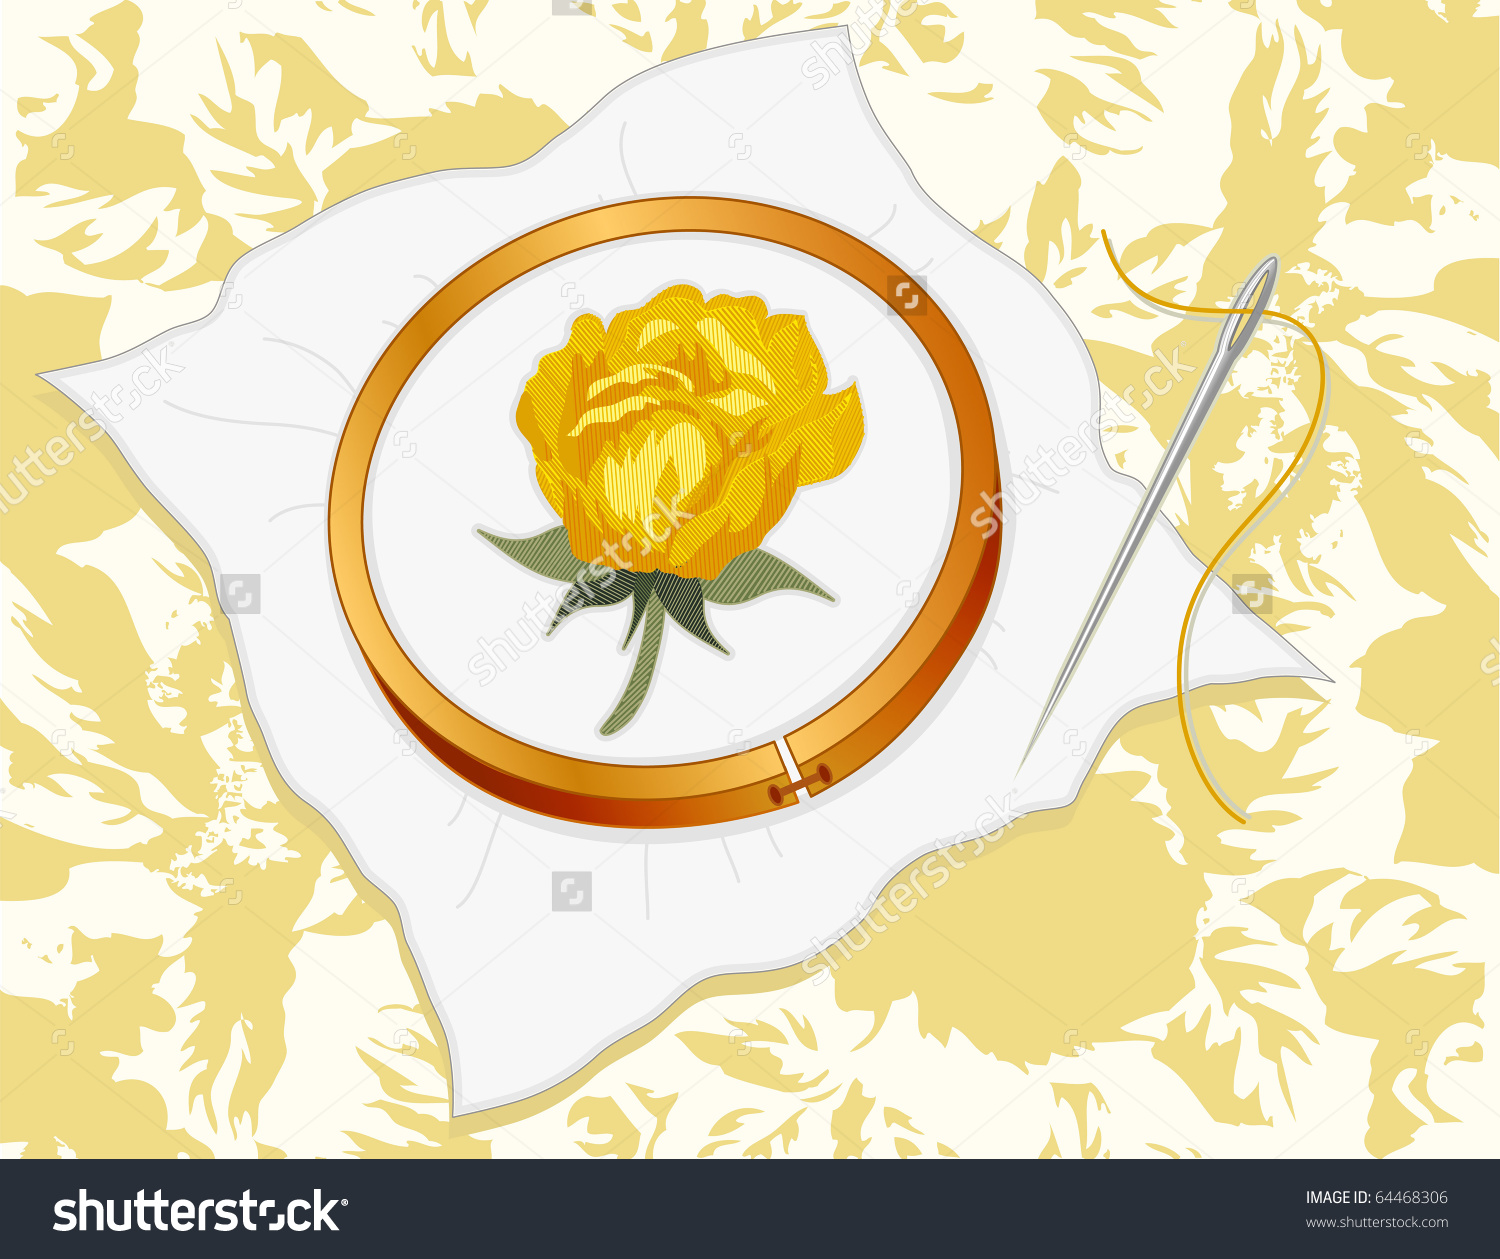 Embroidery. Yellow Rose Stitchery On White Fabric, Wood Hoop.